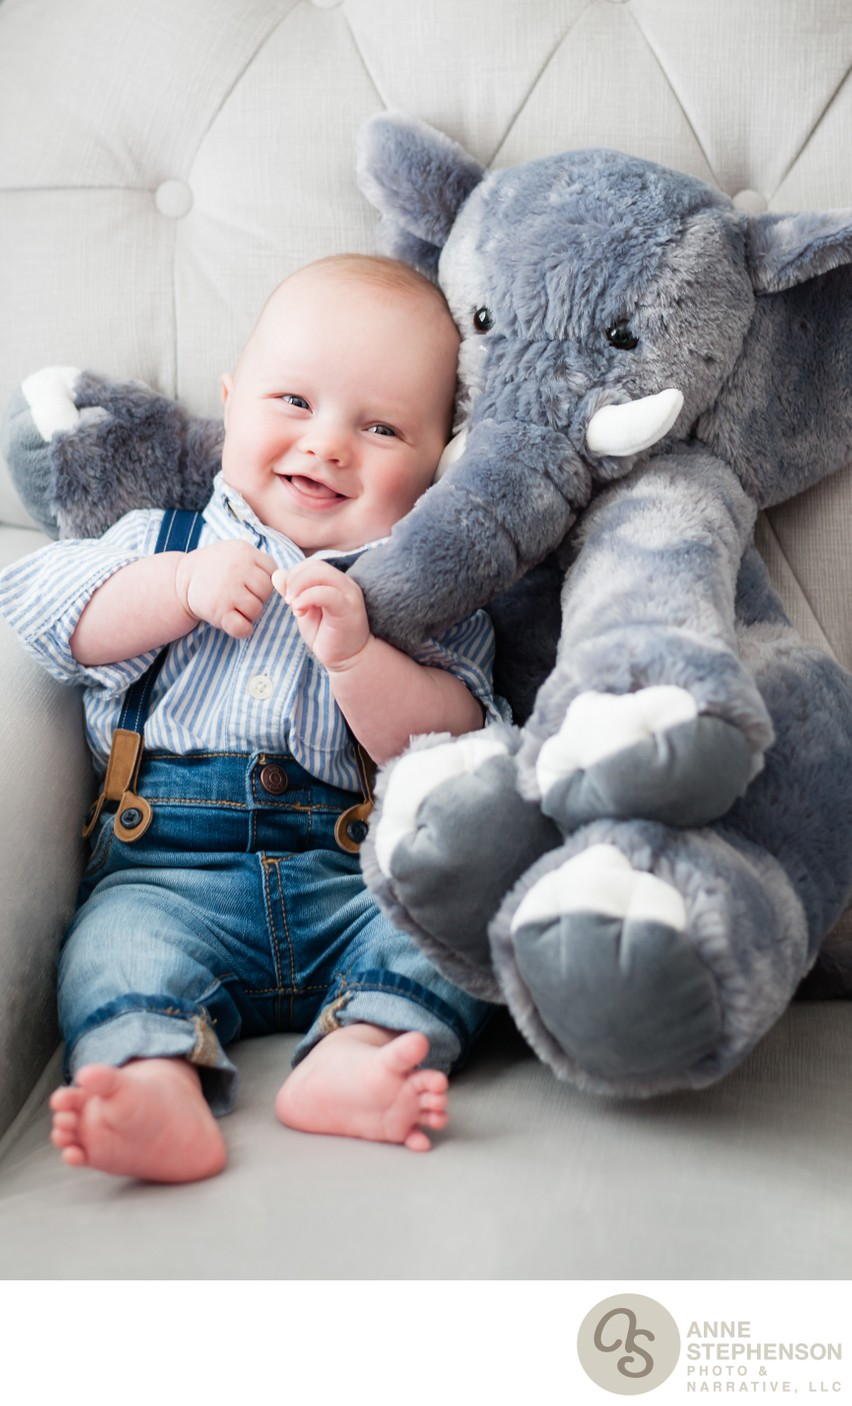 Baby in Favorite Chair with Stuffed Elephant